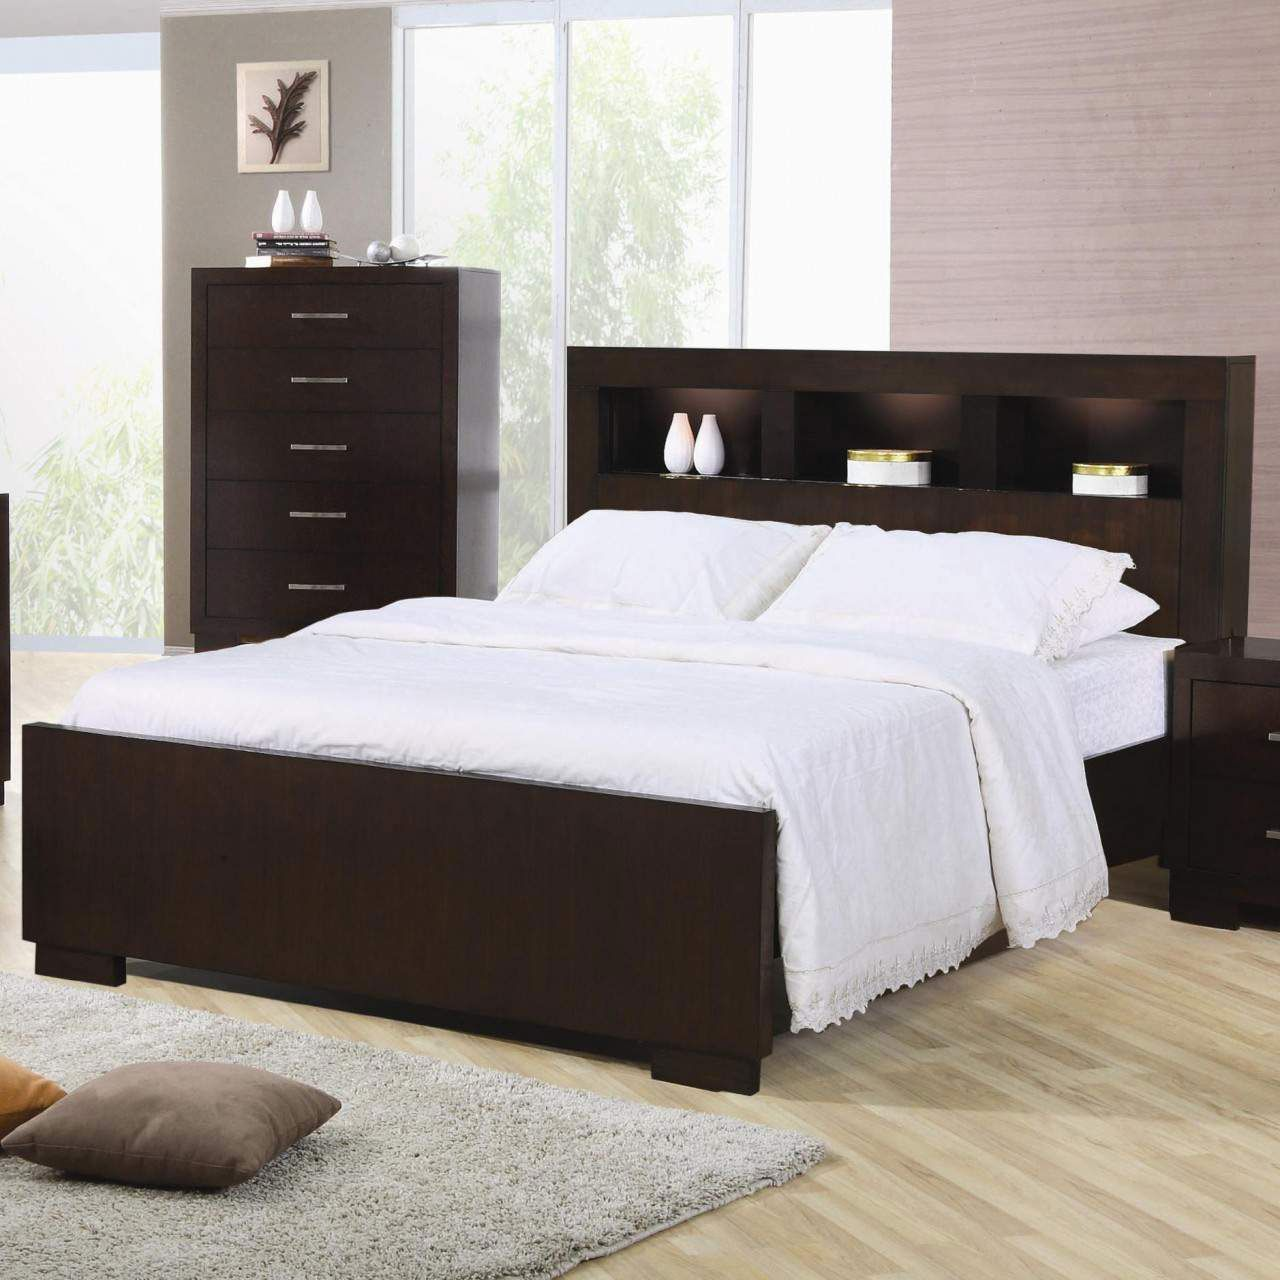 Modern single bed designs with storage - Contemporary Headboard Ideas For Your Modern Bedroom